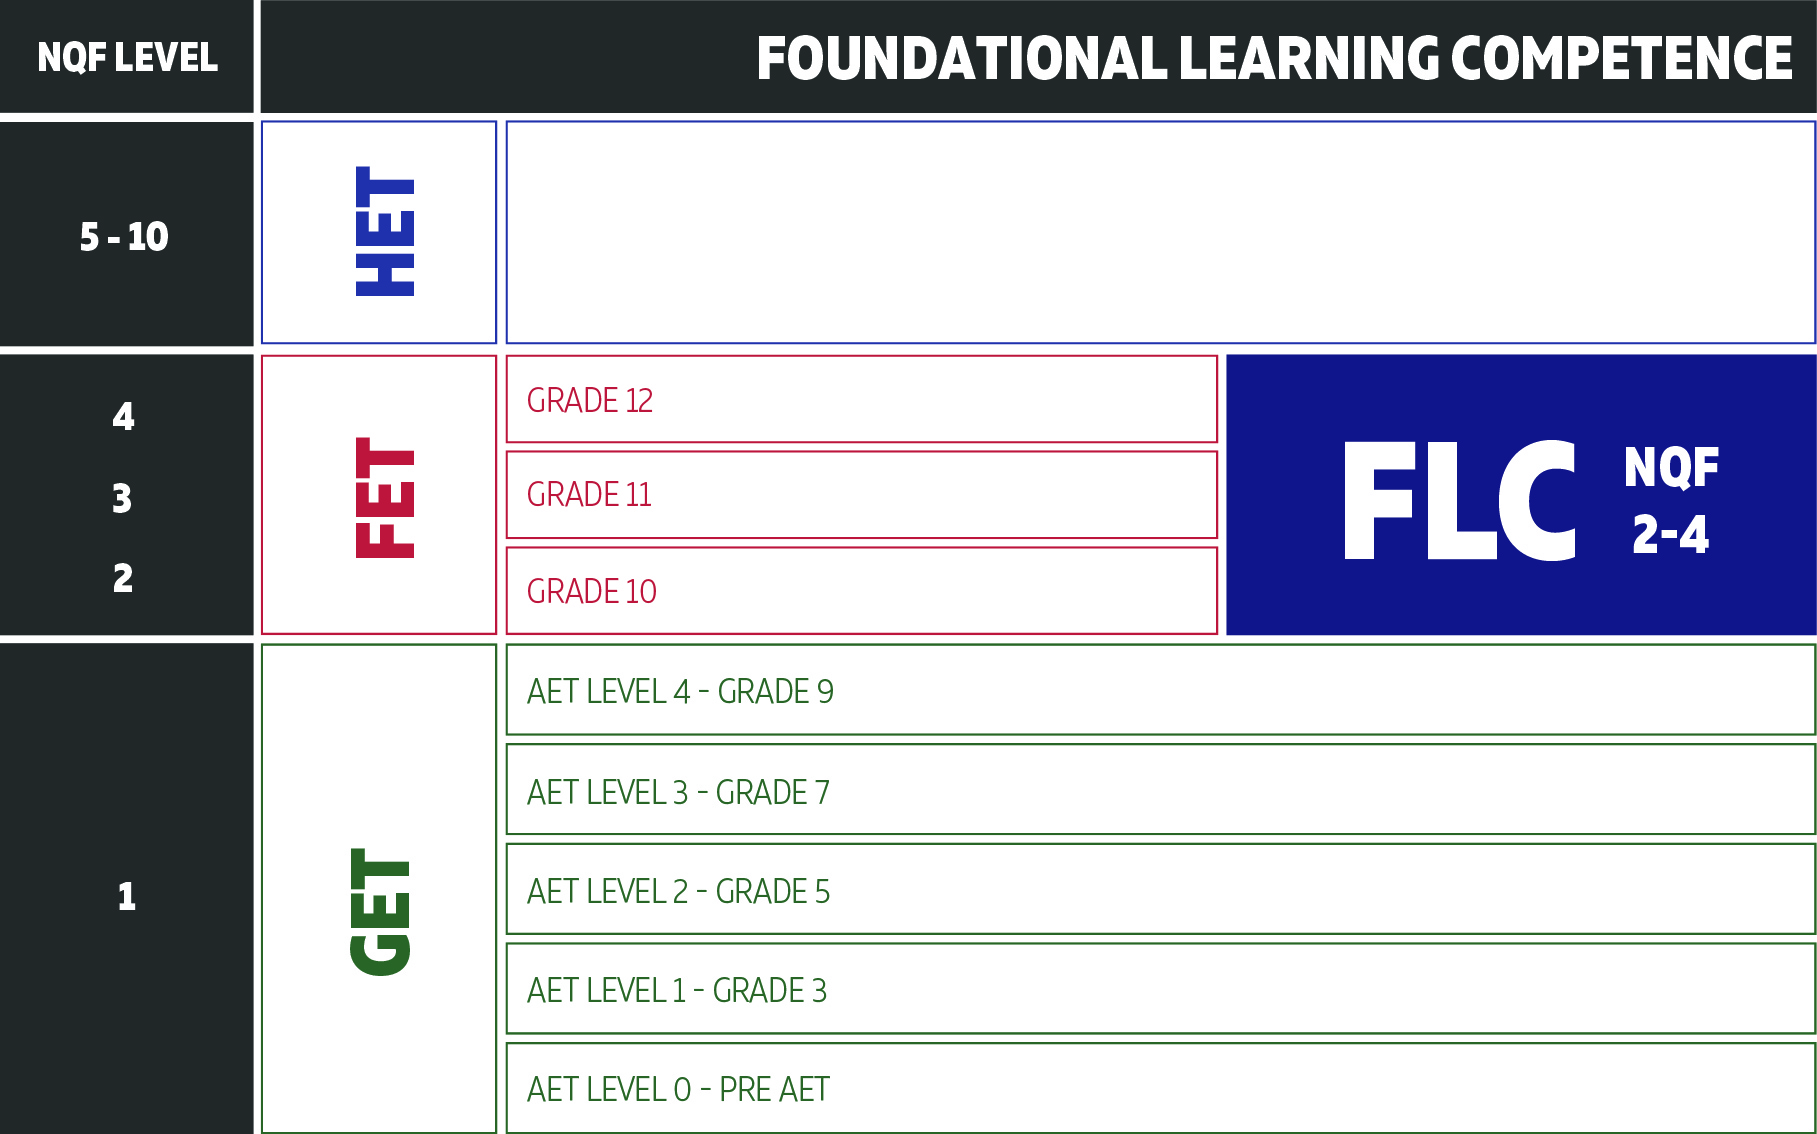 (FLC) Foundational Learning Competence in the NQF